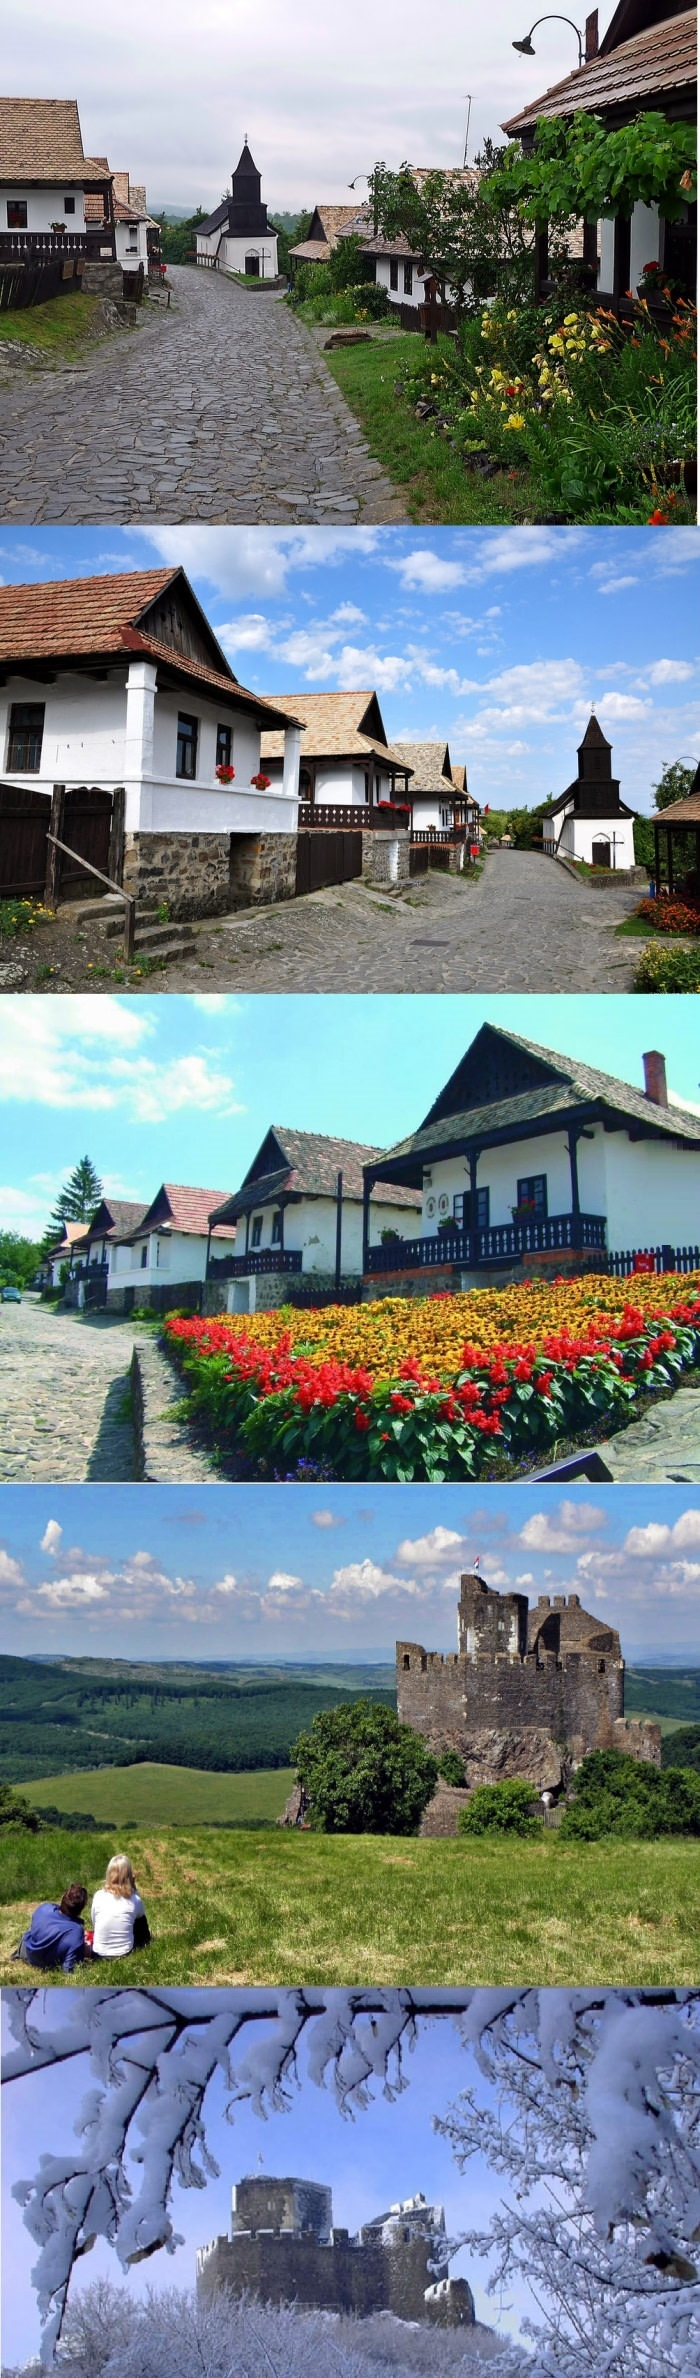 A historical European village